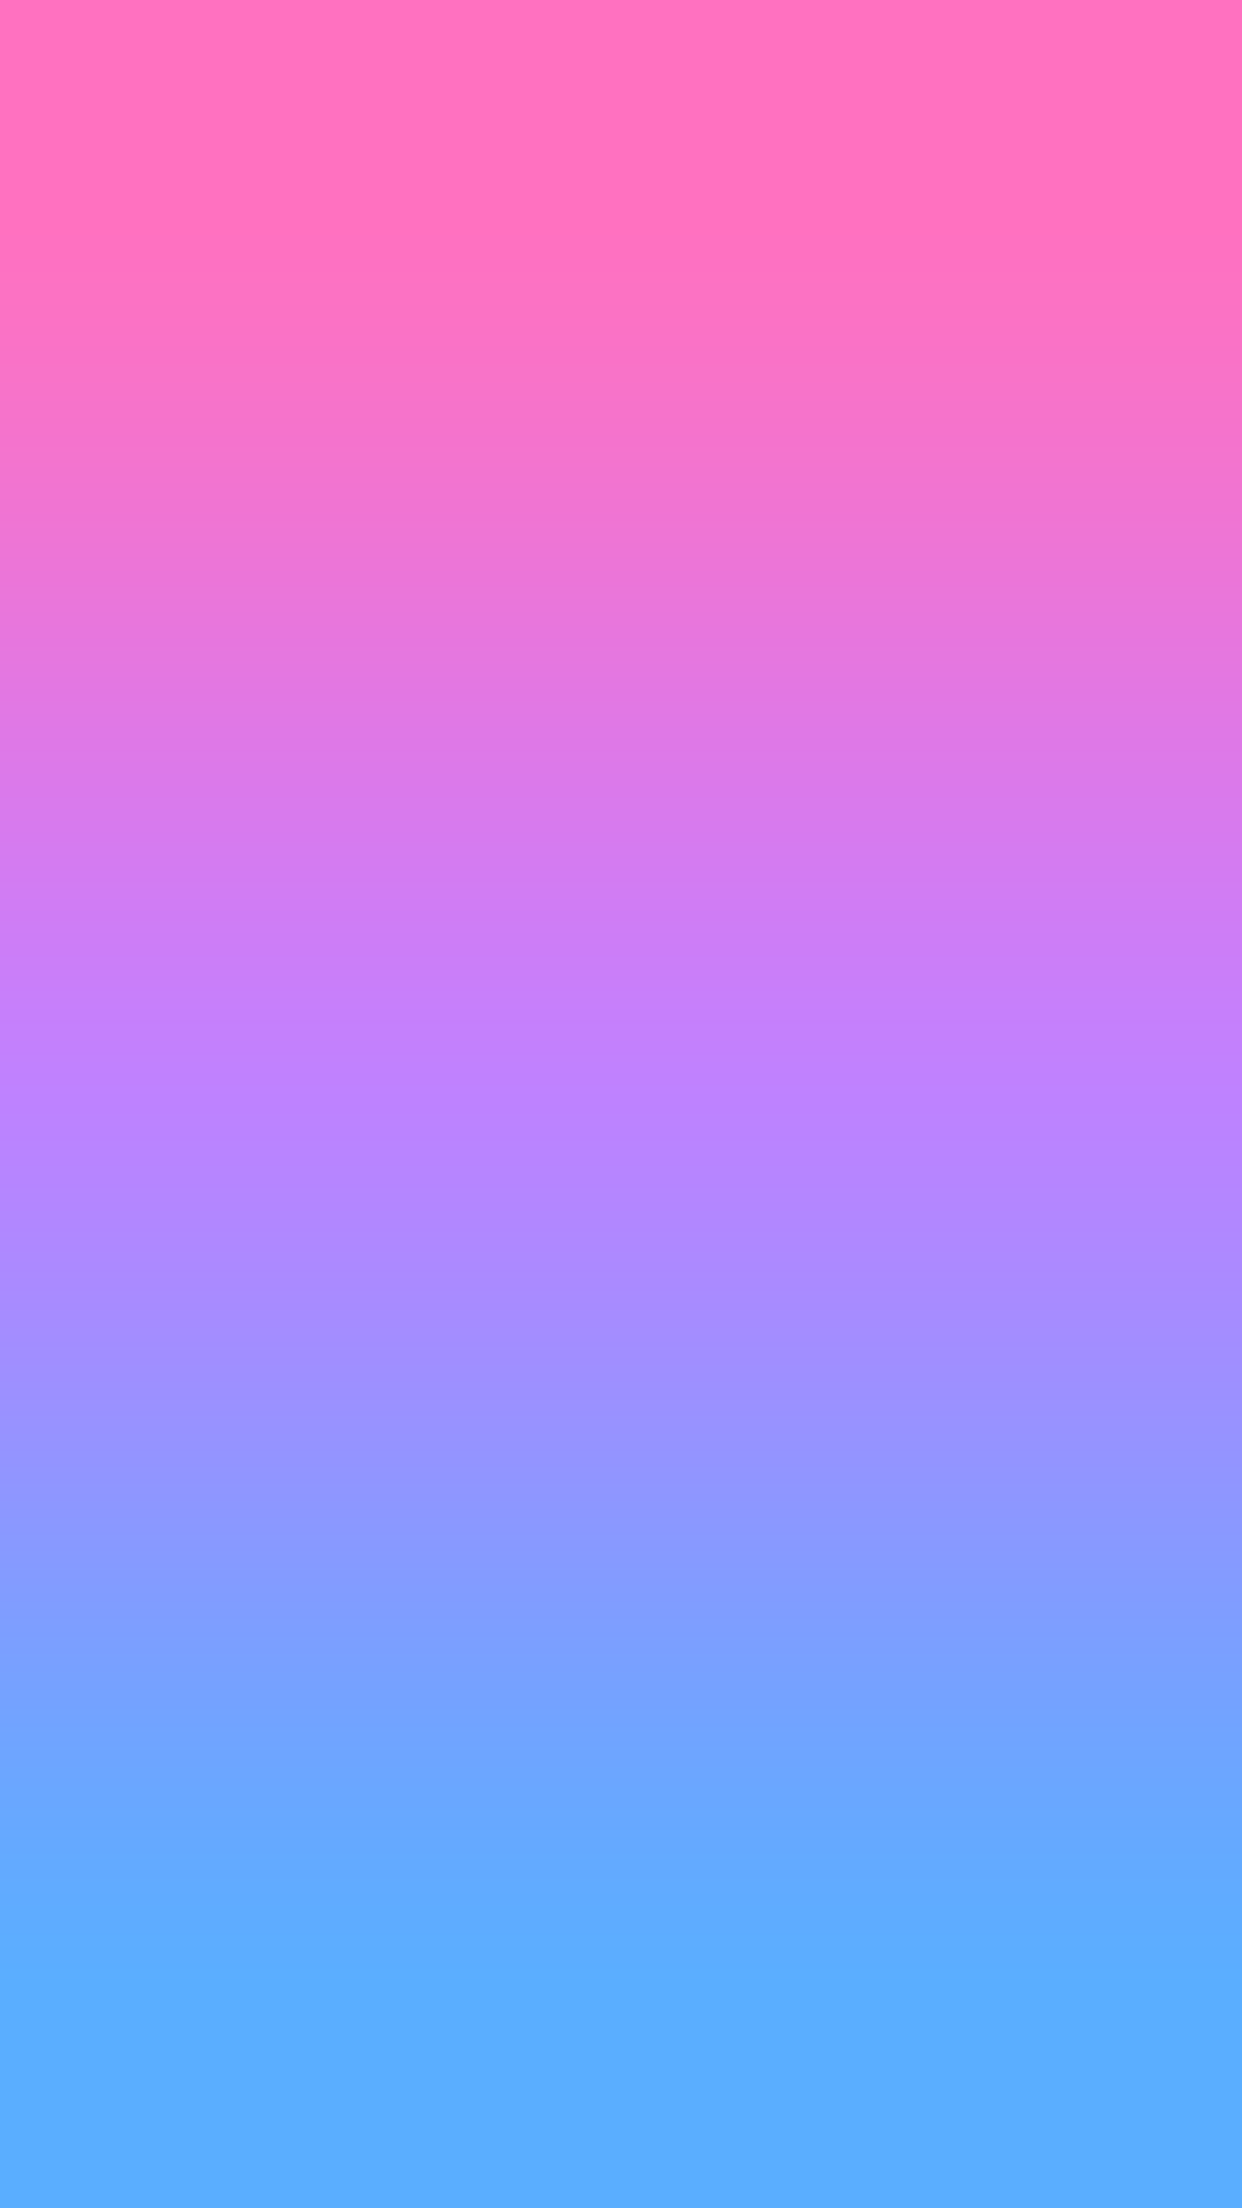 Pink Purple Blue Violet Grant Ombre Wallpaper Background Hd Iphone